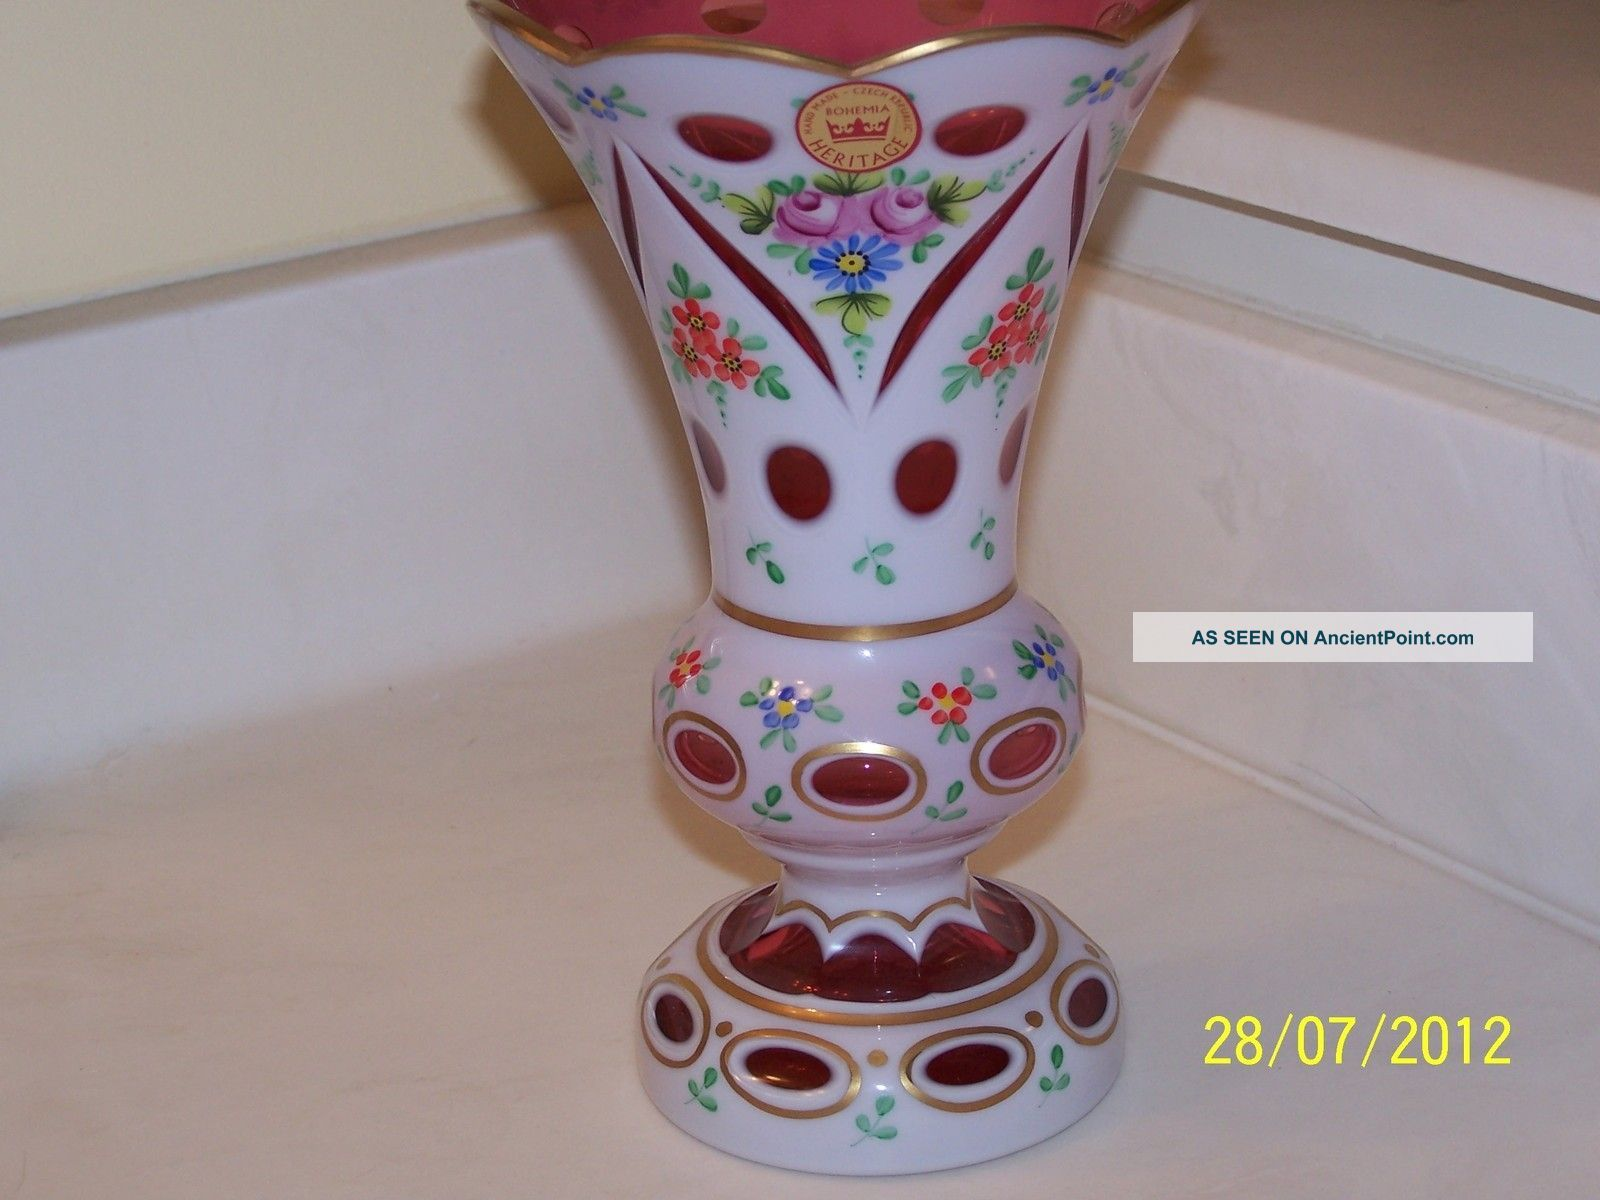 Czech decorative items czech republic bohemia heritage cranberry czech decorative items czech republic bohemia heritage cranberrymilk glass vase vases photo reviewsmspy